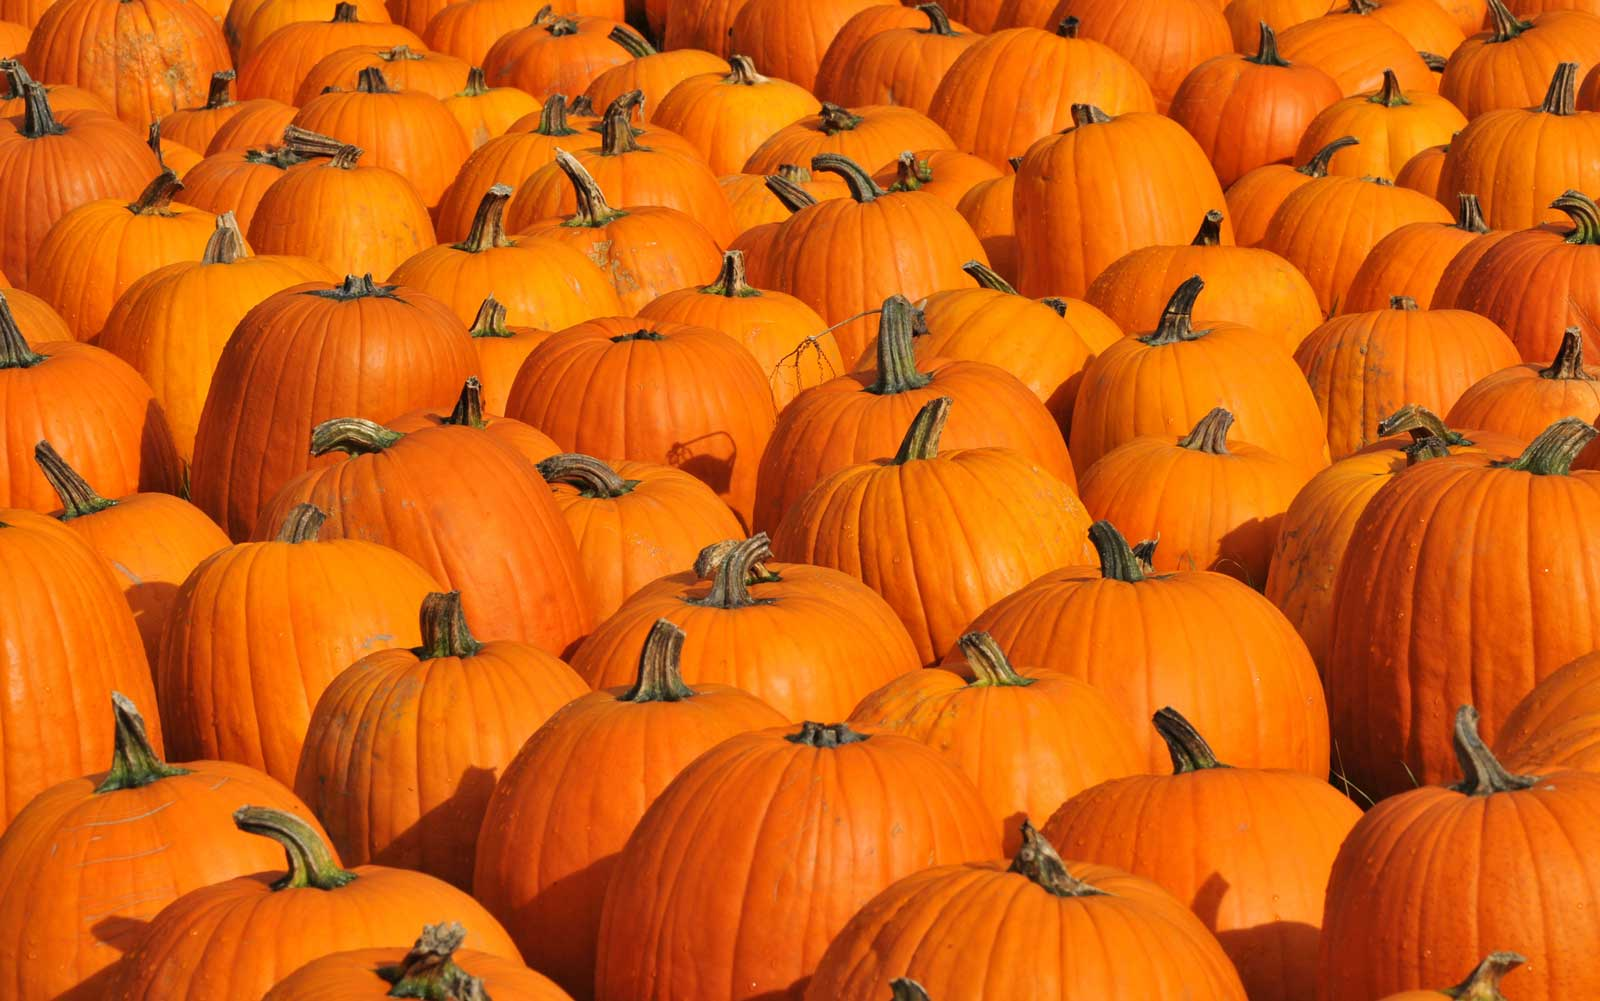 How to Clean Out a Pumpkin